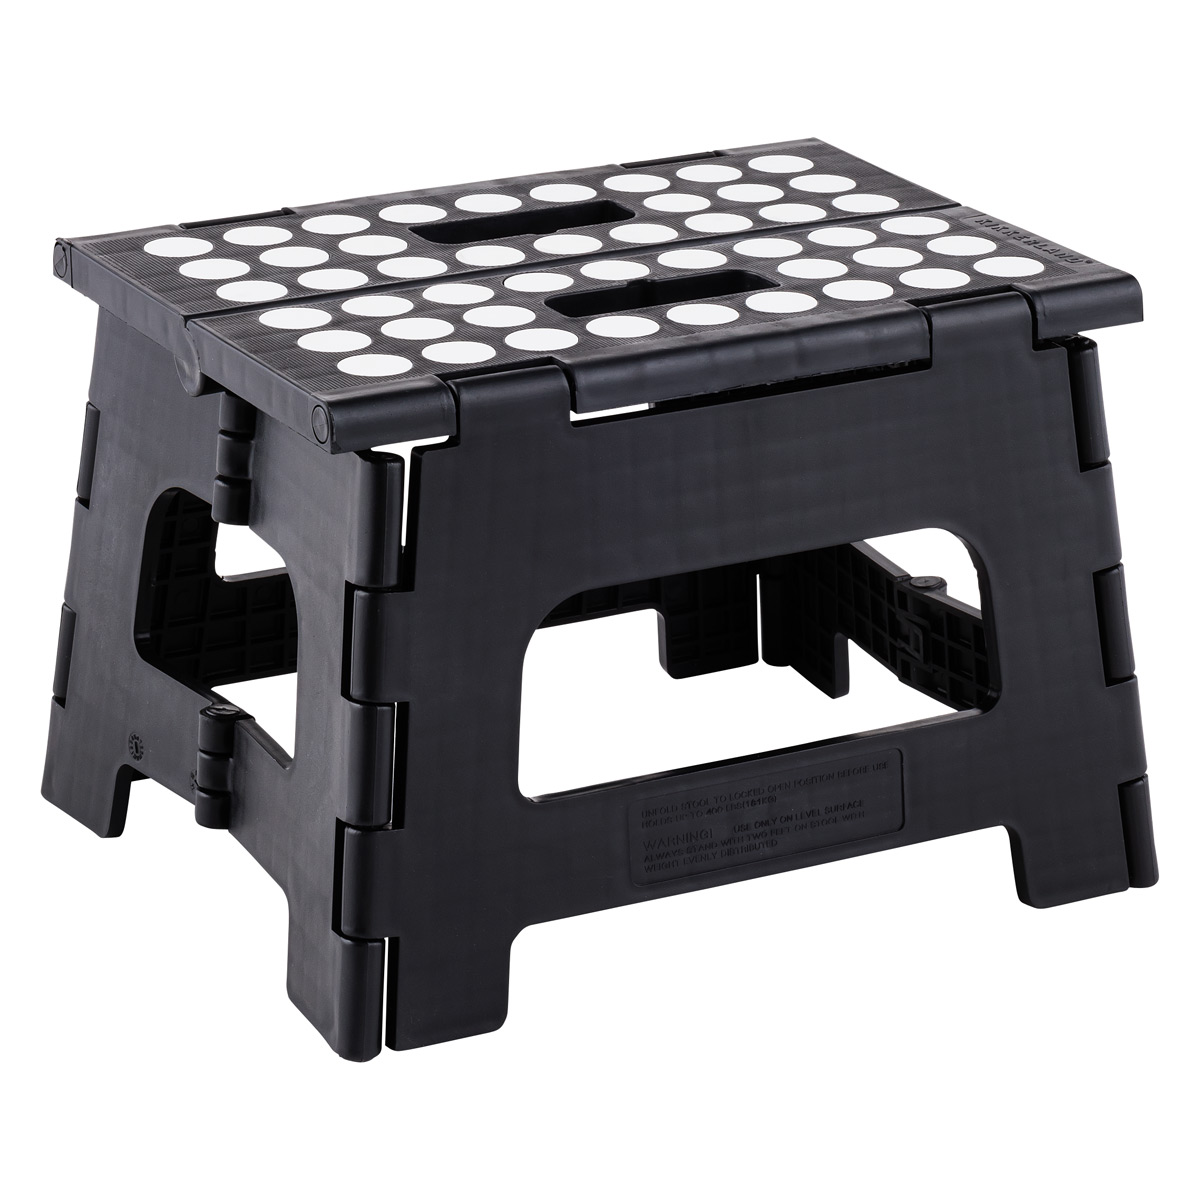 Easy Fold Step Stool ...  sc 1 st  The Container Store & Folding Step Stool - Black Easy Folding Step Stool | The Container ... islam-shia.org